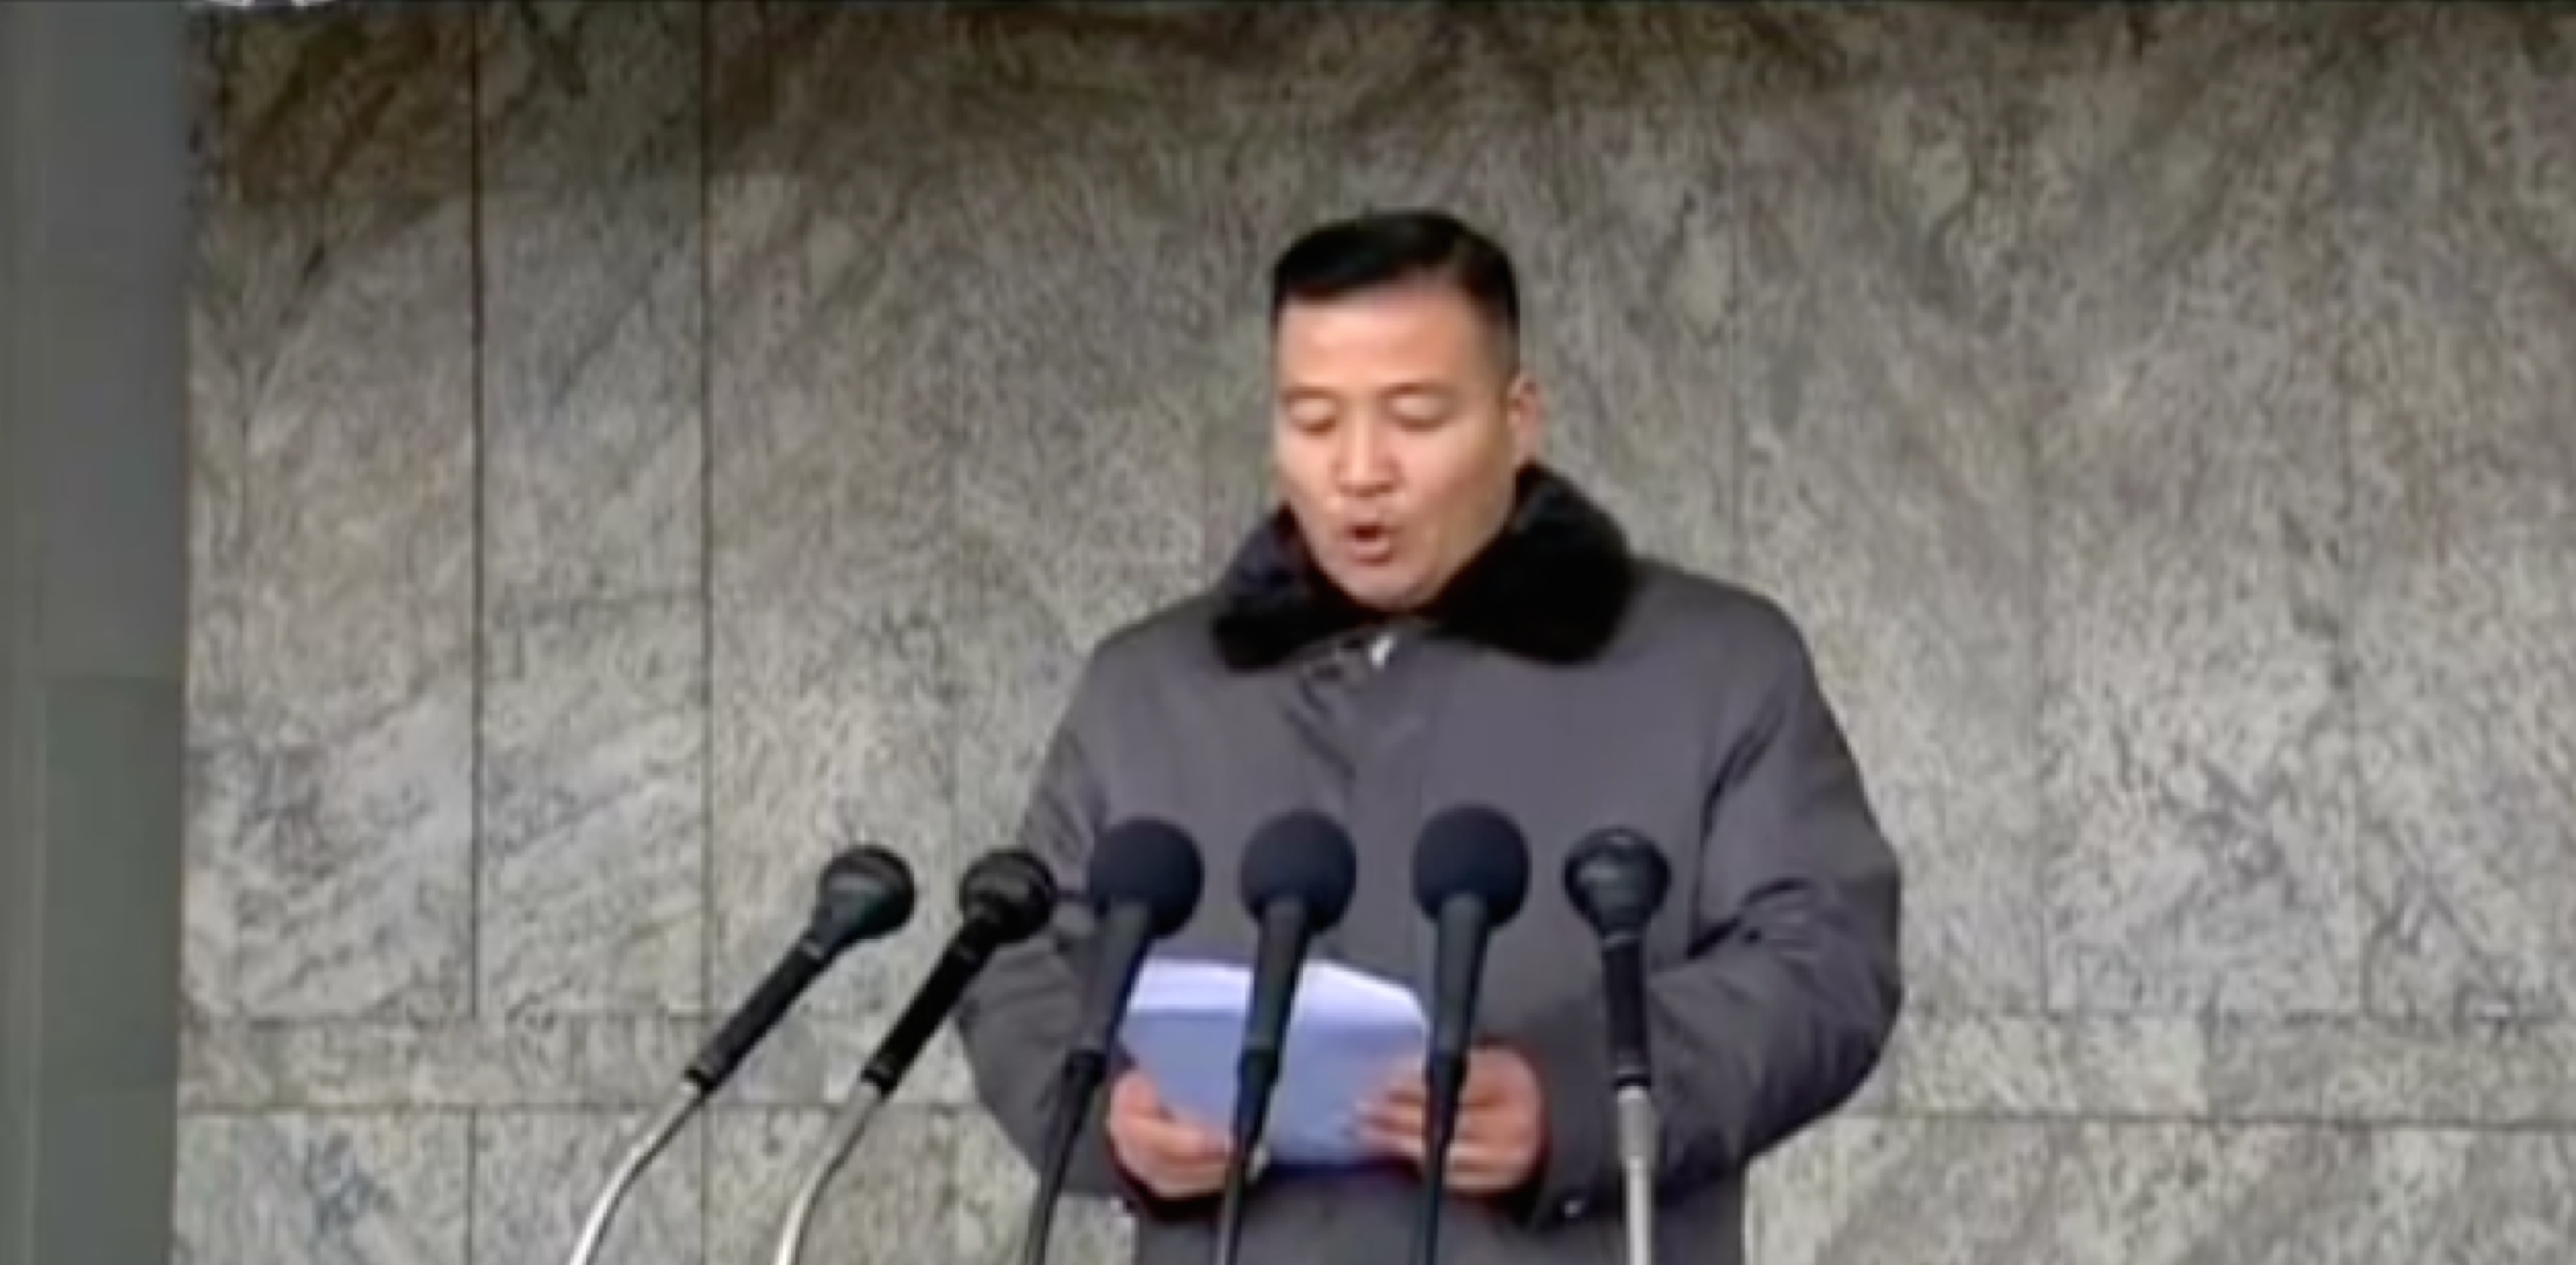 Kim Il Sung Youth League Central Committee Chairman Jon Yong Nam delivers a congratulatory speech at the February 8, 2016 mass rally (Photo: KCTV screen grab).